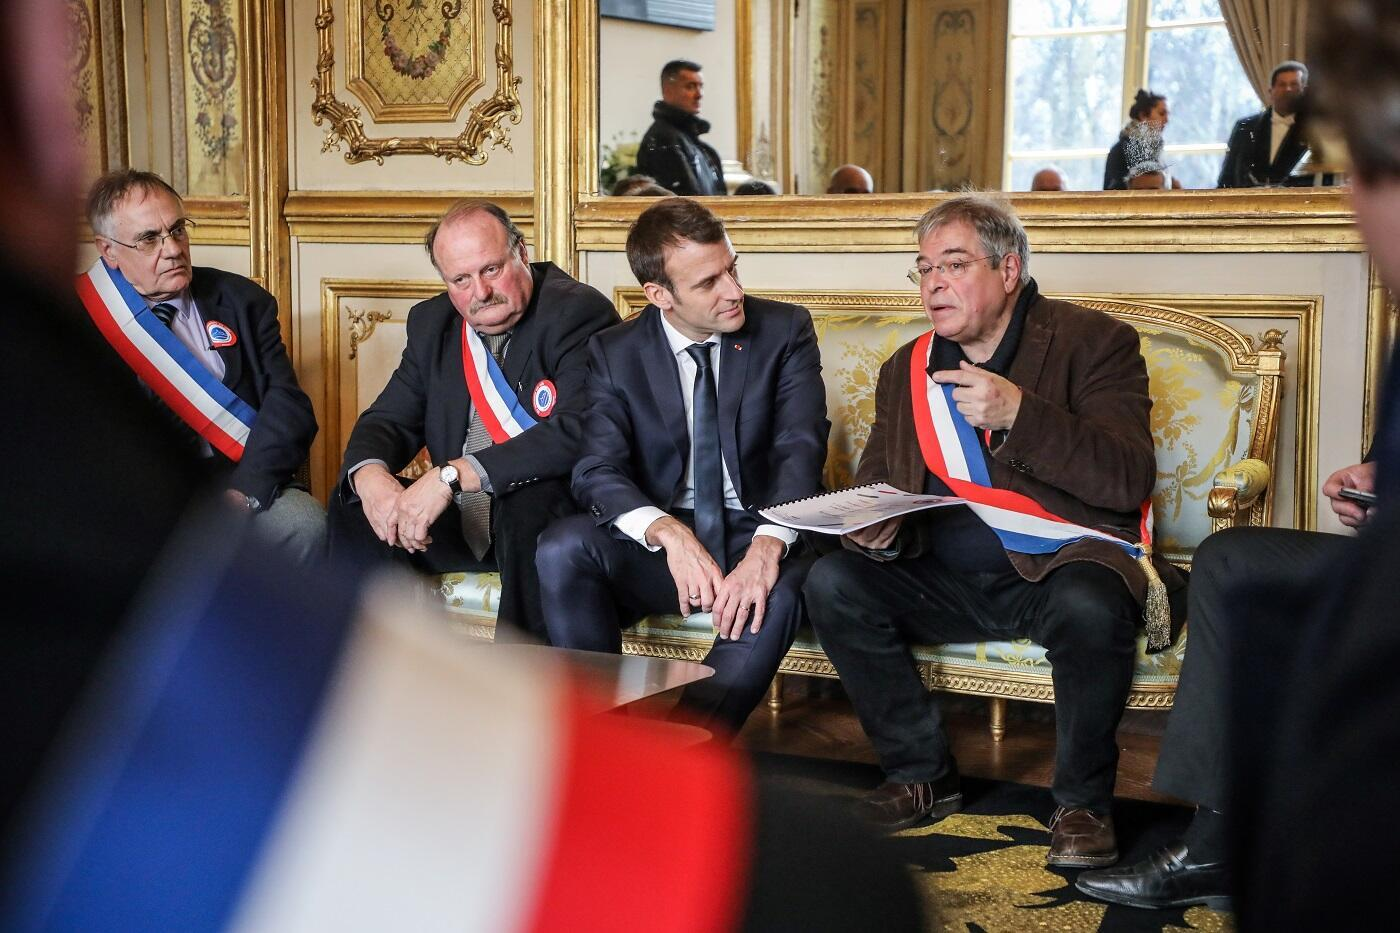 Mayors of rural areas met French president Emmanuel Macron on January 14, 2019 in Paris and handed over the first citizens requests collected on registers available in city halls